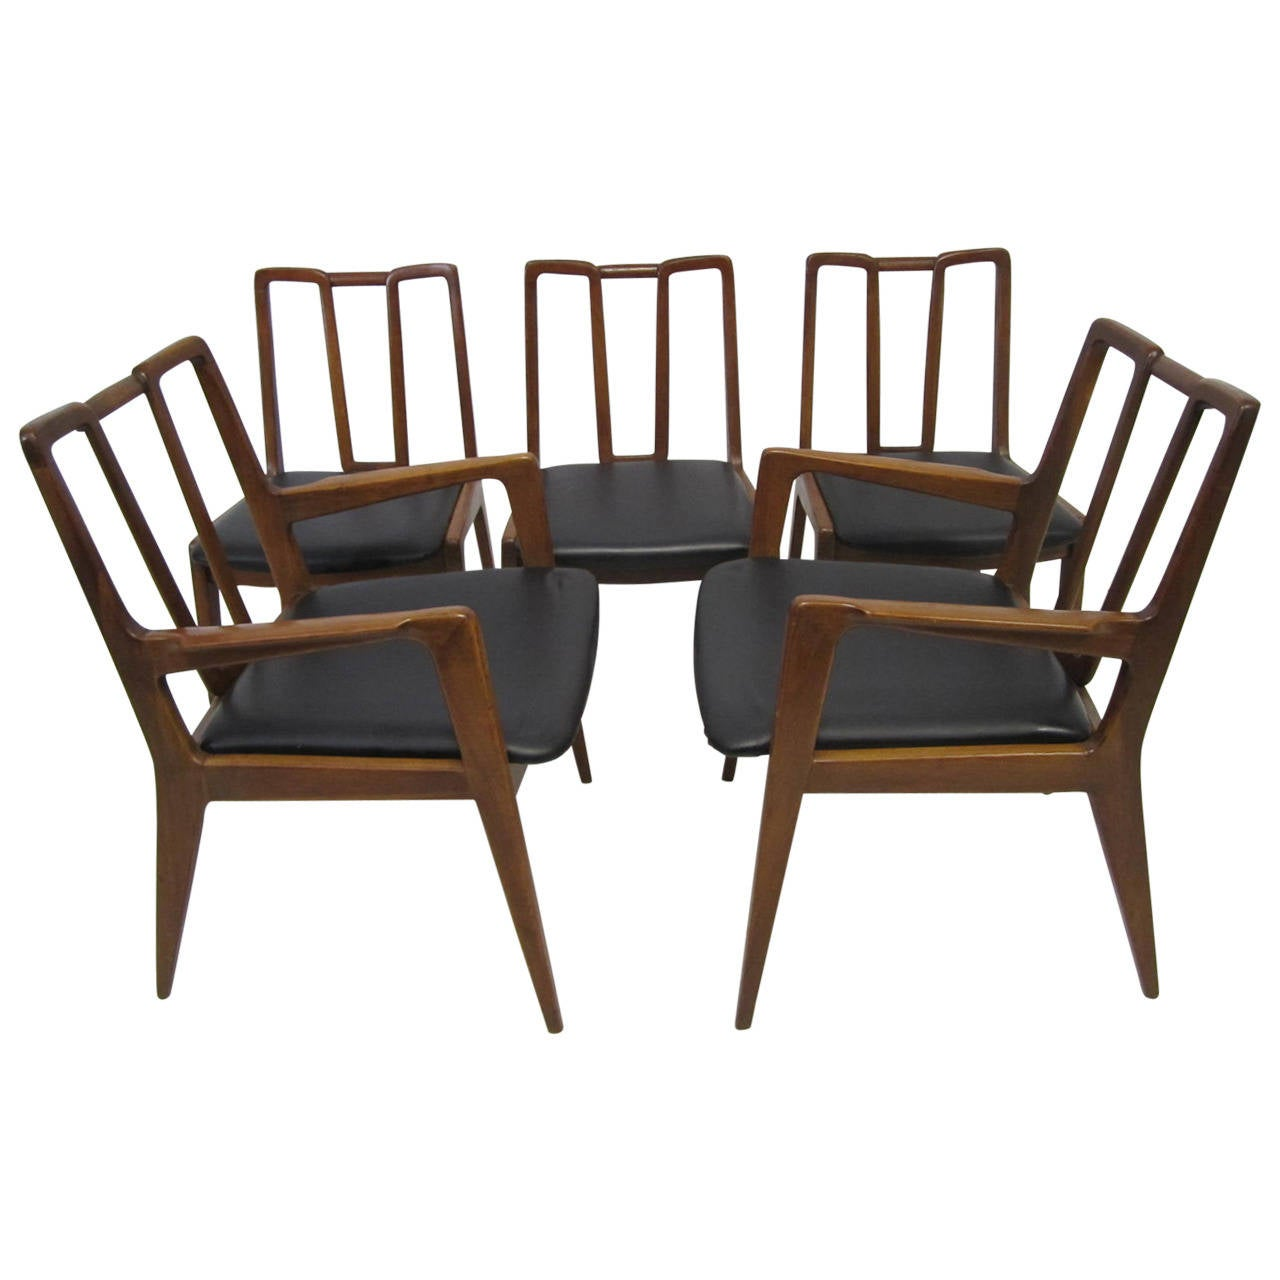 Handsome set of five john stuart walnut dining chairs mid for Walnut dining chairs modern